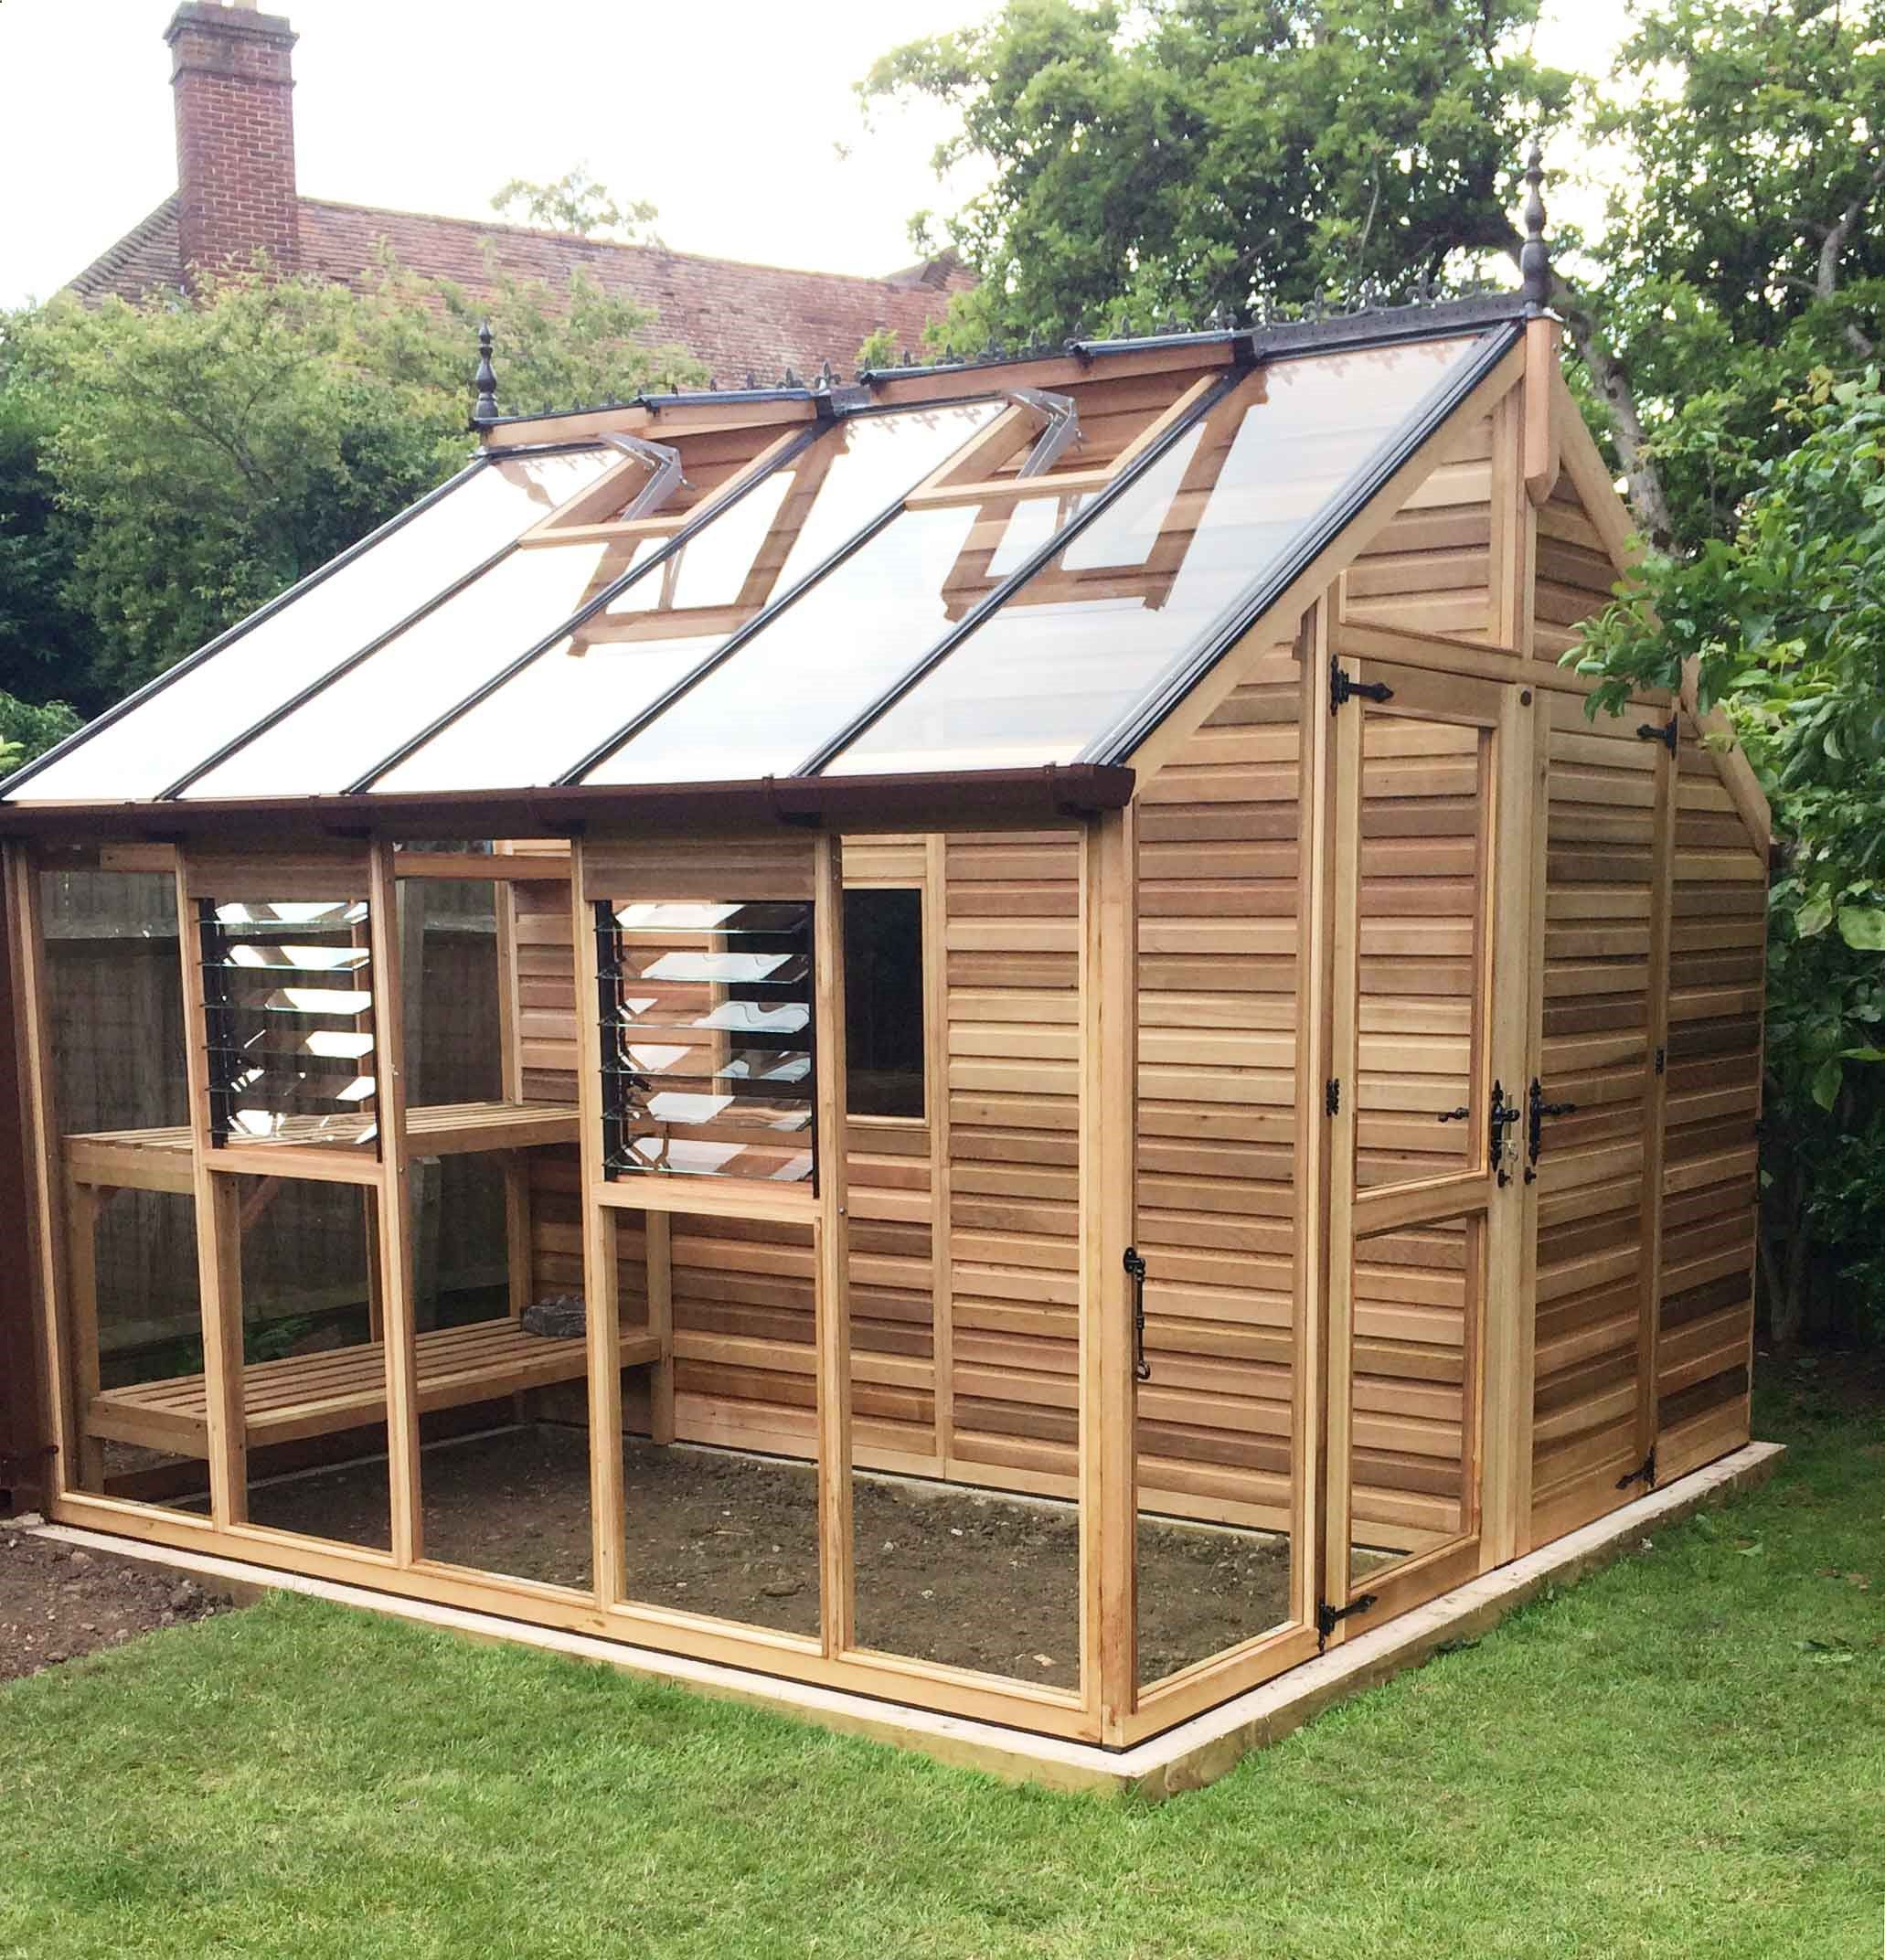 shed plans cedar centaur shed greenhouse combo 12x12 now on extraordinary unique small storage shed ideas for your garden little plans for building id=99331